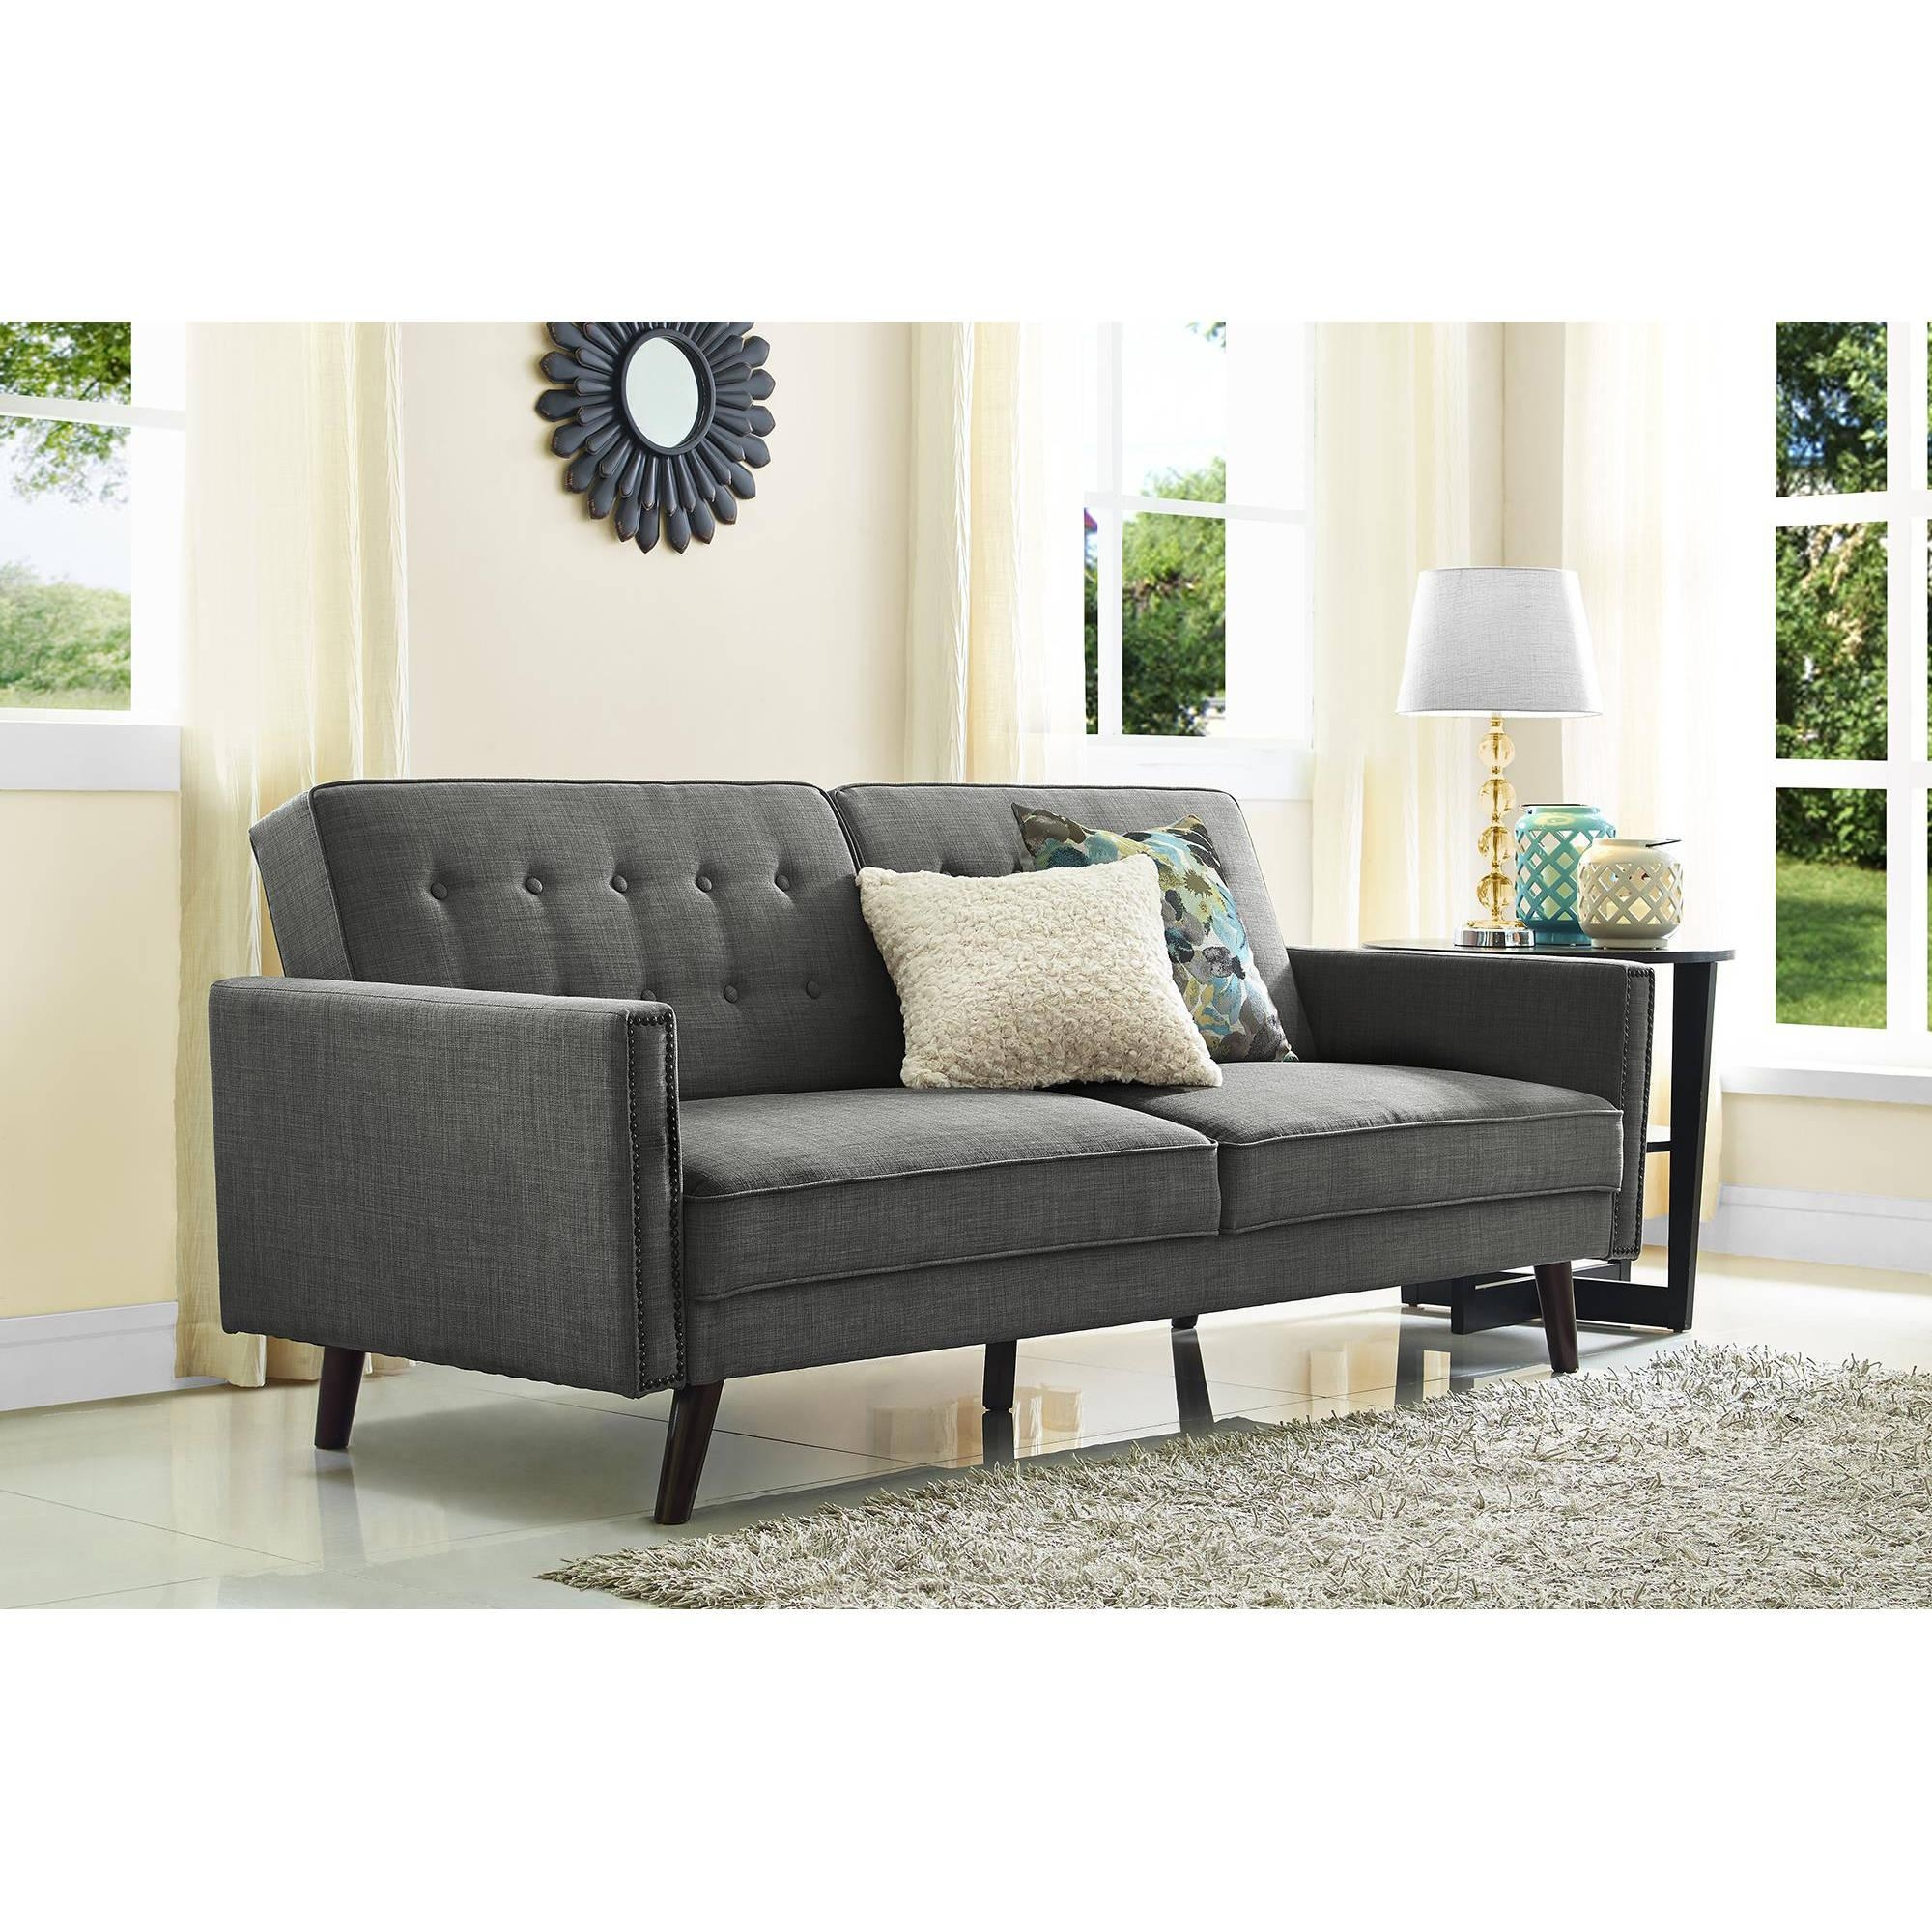 Furniture: Leather Futon Walmart | Sofa Bed Target | Futon Couches In Target Couch Beds (Image 5 of 20)